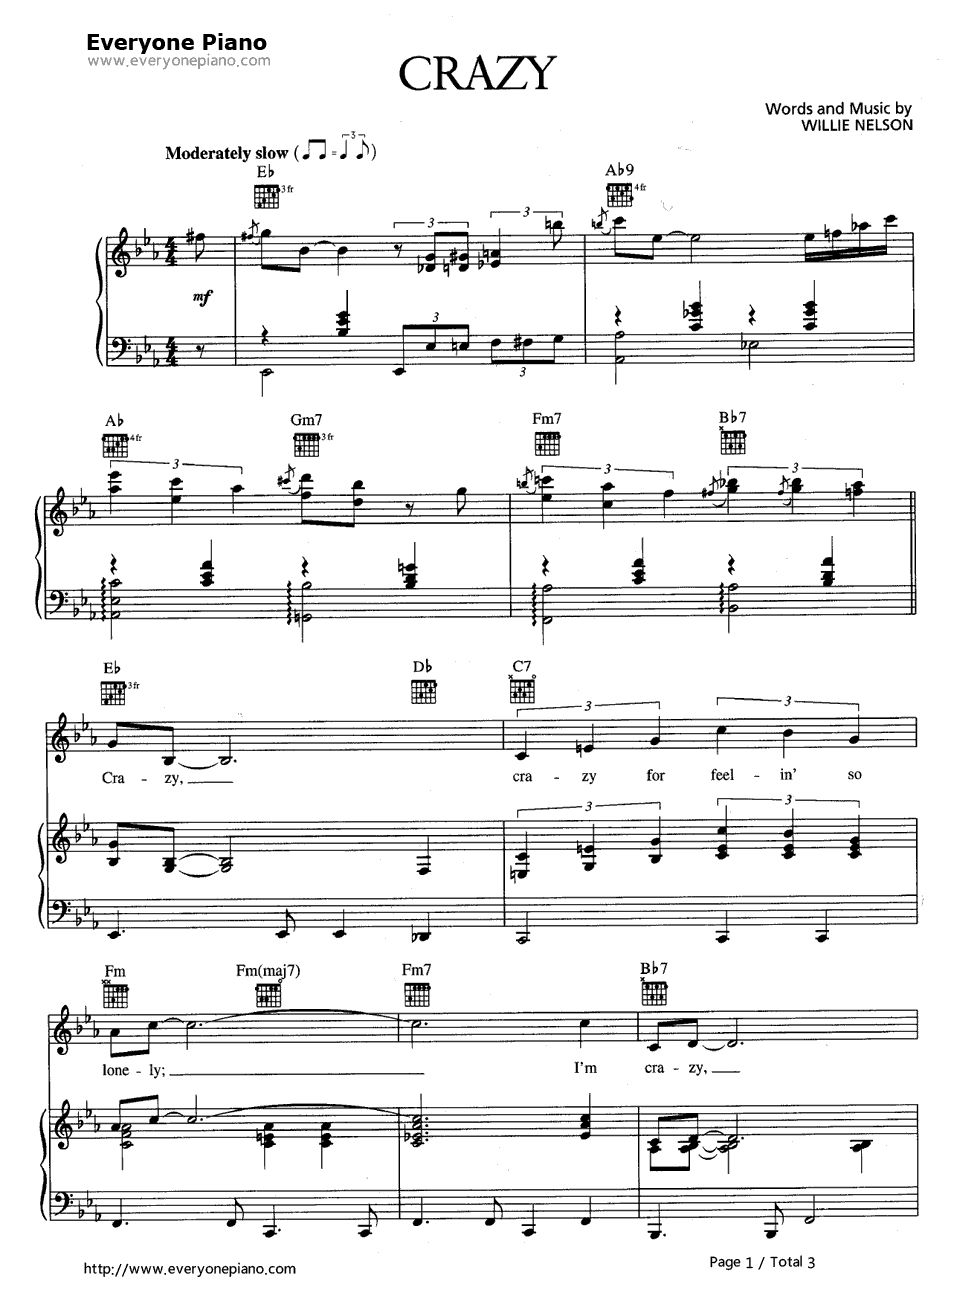 Crazy patsy cline stave preview 1 free piano sheet music piano listen now print sheet crazy patsy cline stave preview 1 hexwebz Image collections